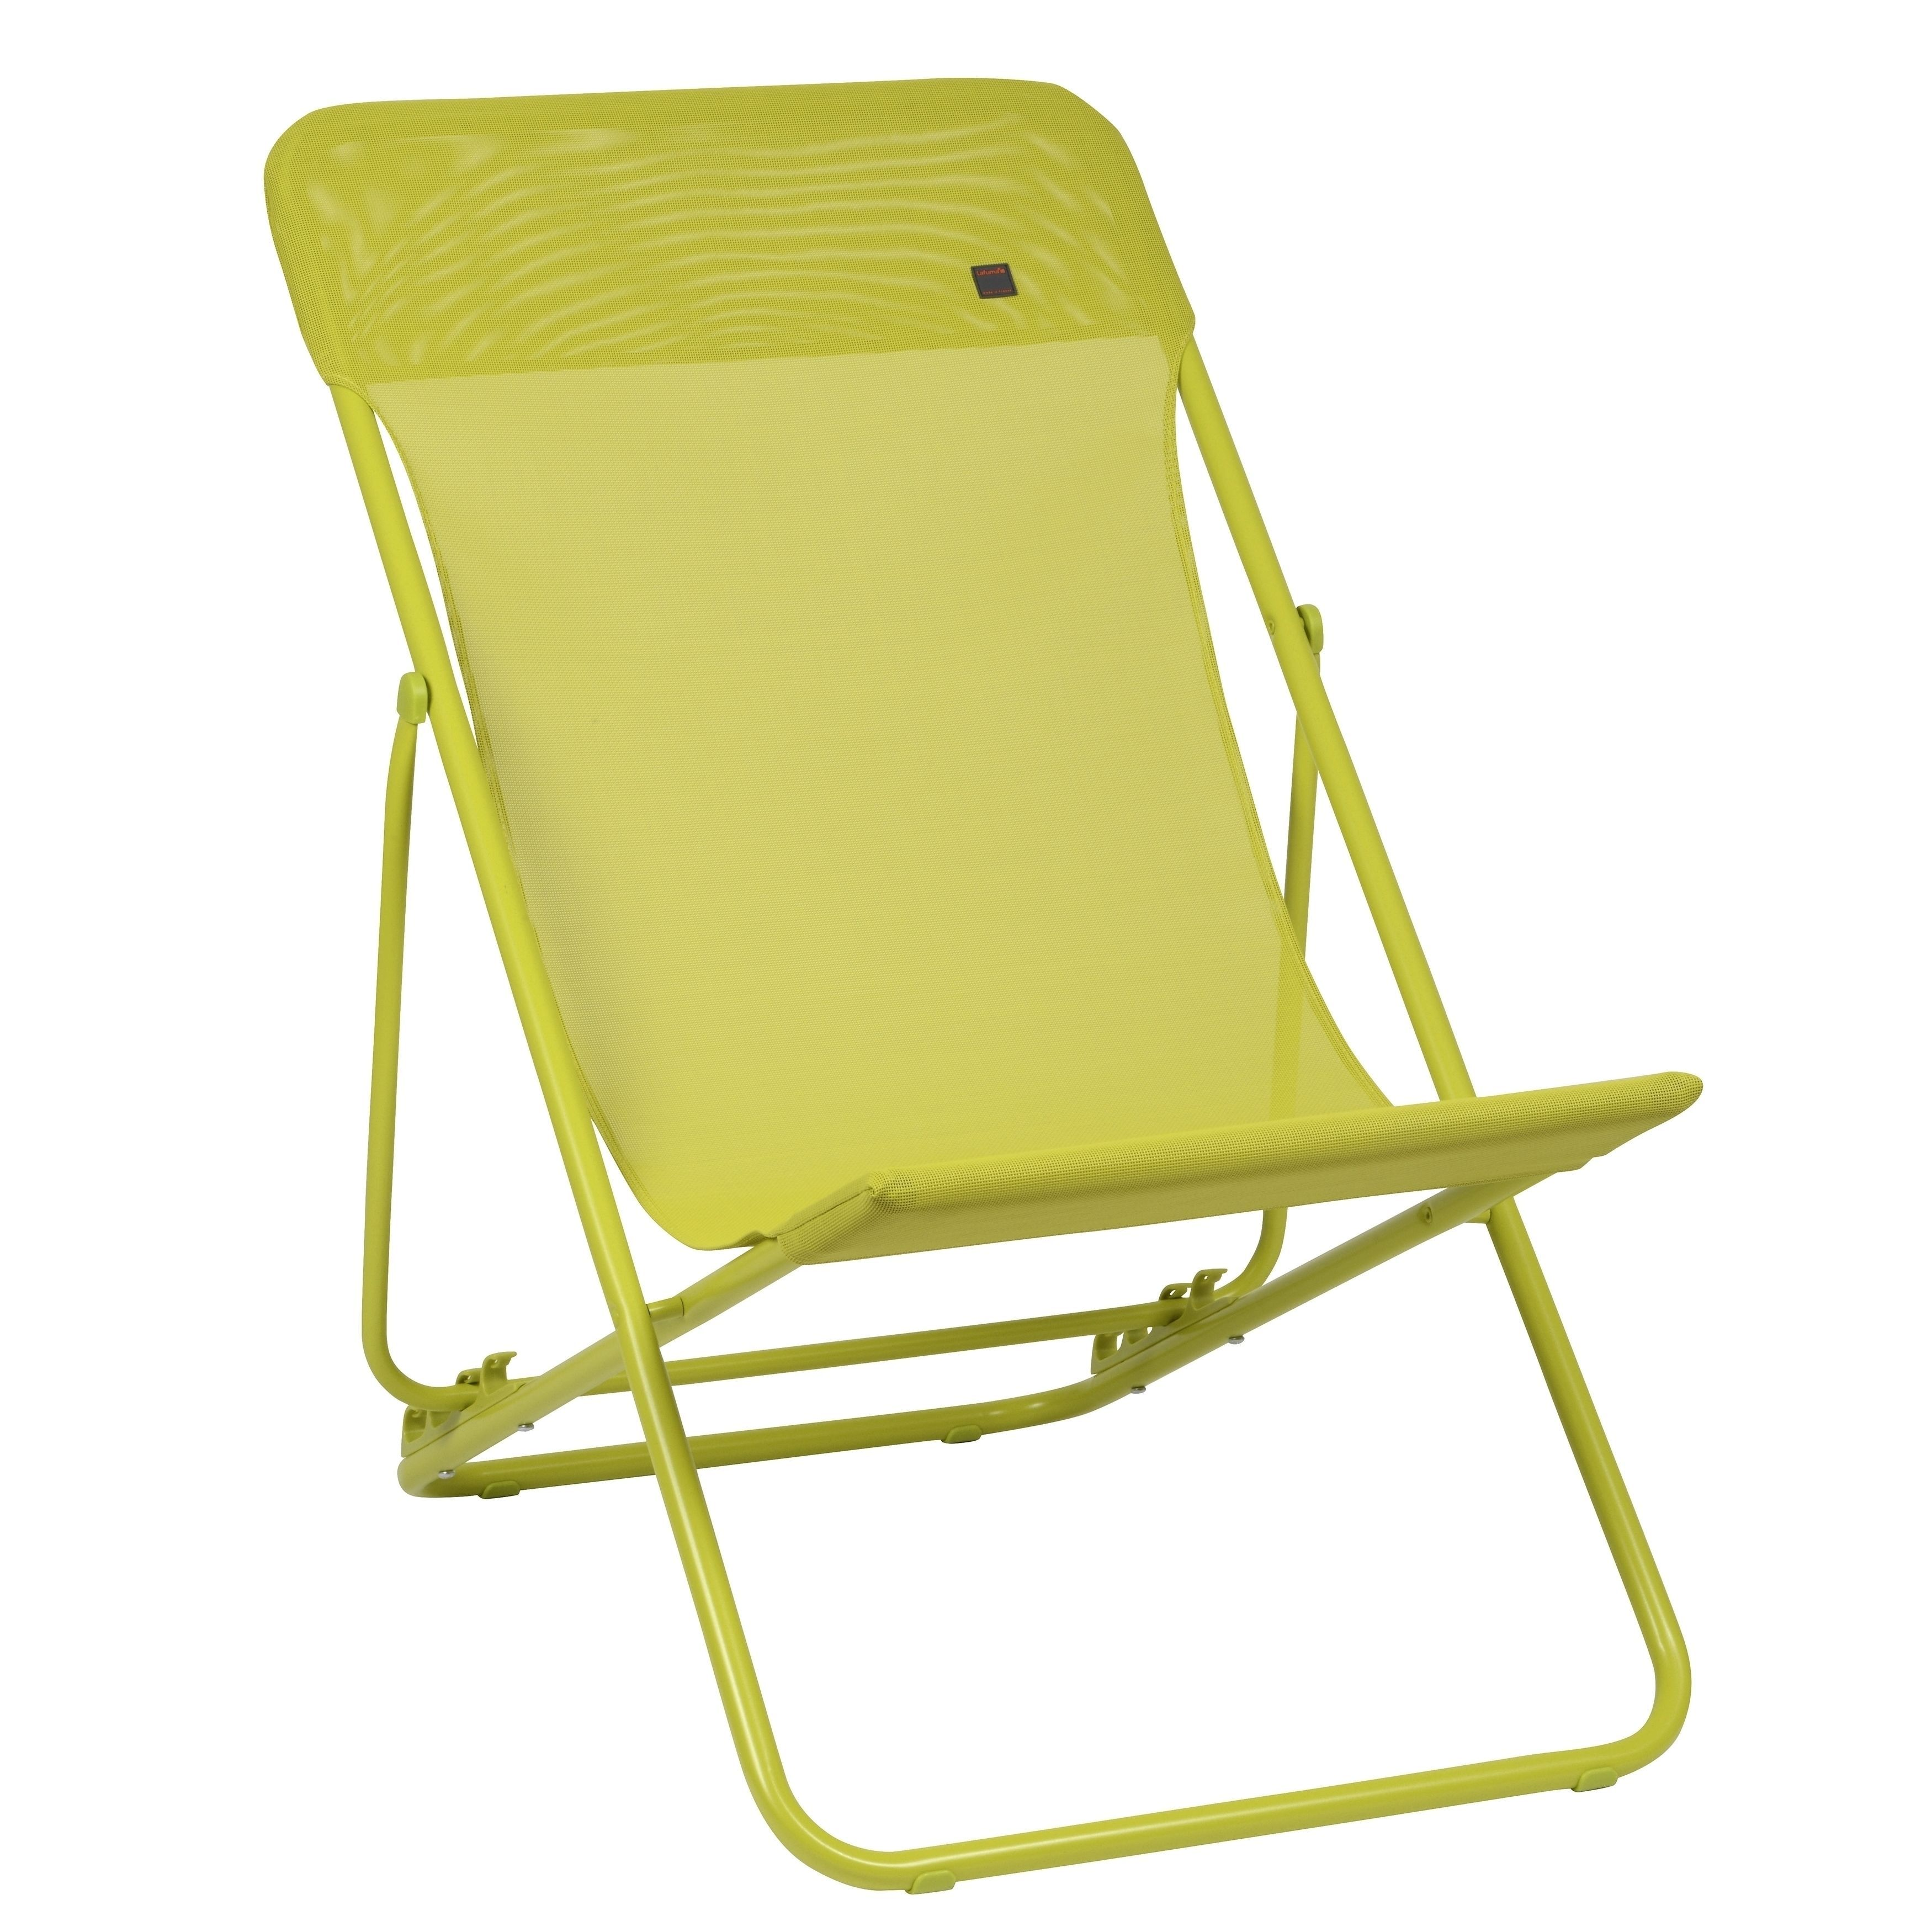 brighton beach collection on beaches web the styl in best deck desig chair world chairs furniture